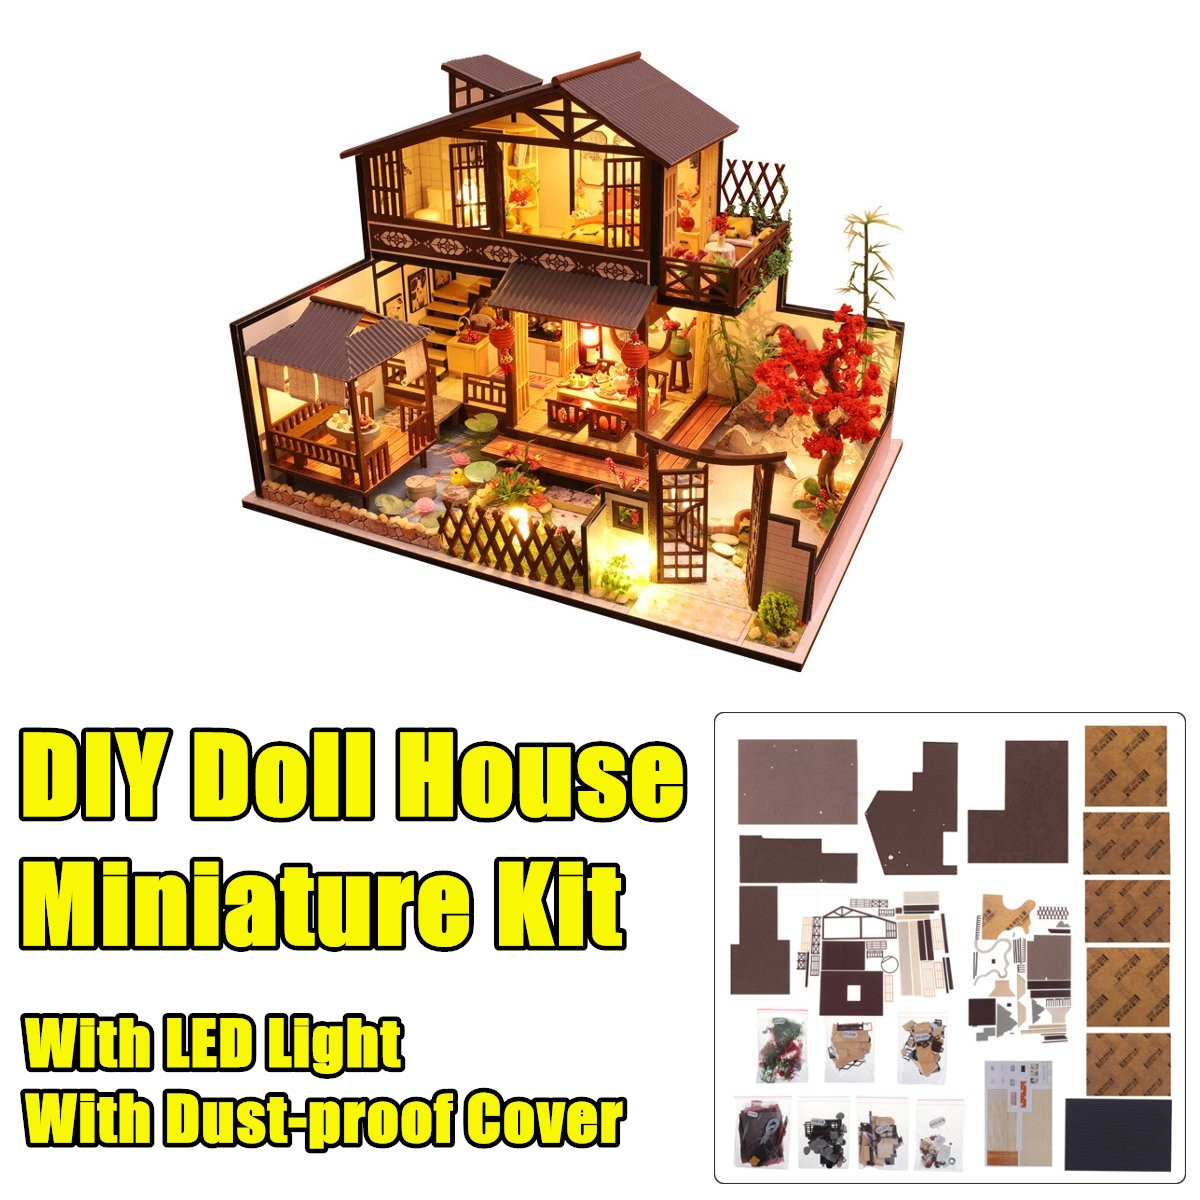 Wooden DIY Courtyard Doll House Miniature Kit Handmade Assemble Toy with LED Light Dust-proof Cover for Gift Collection